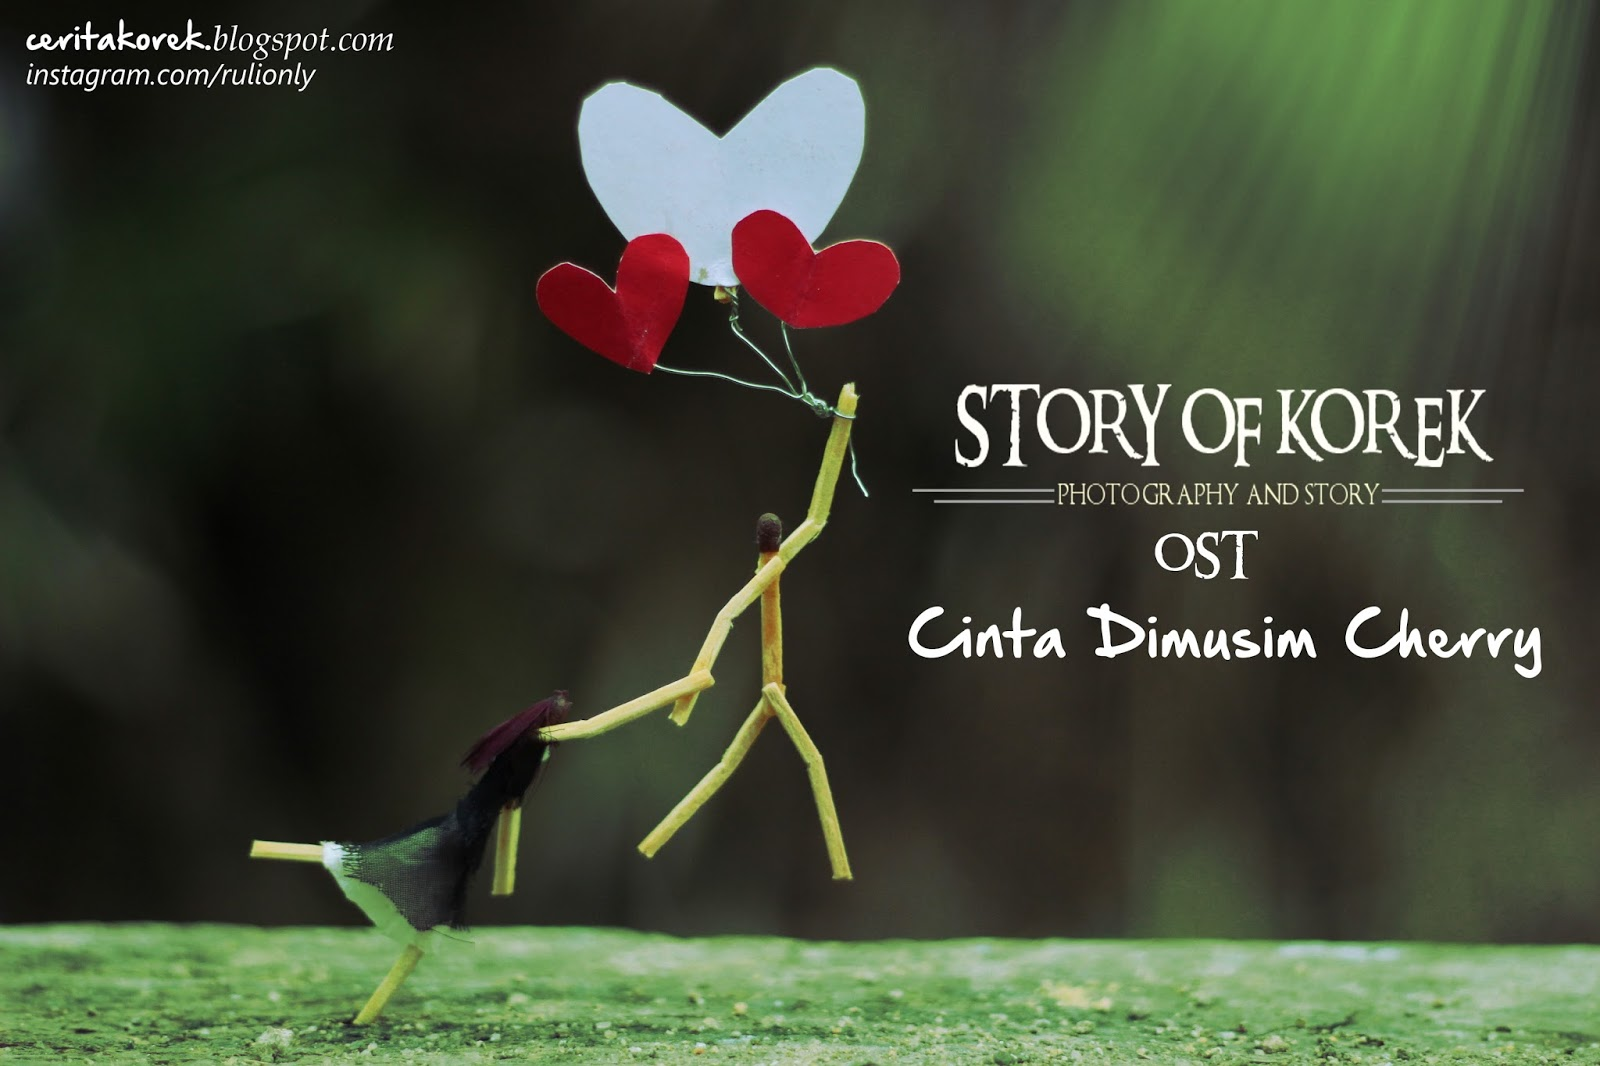 Ost Cinta Dimusim Cherry Versi Indonesia Korekgraphy Video